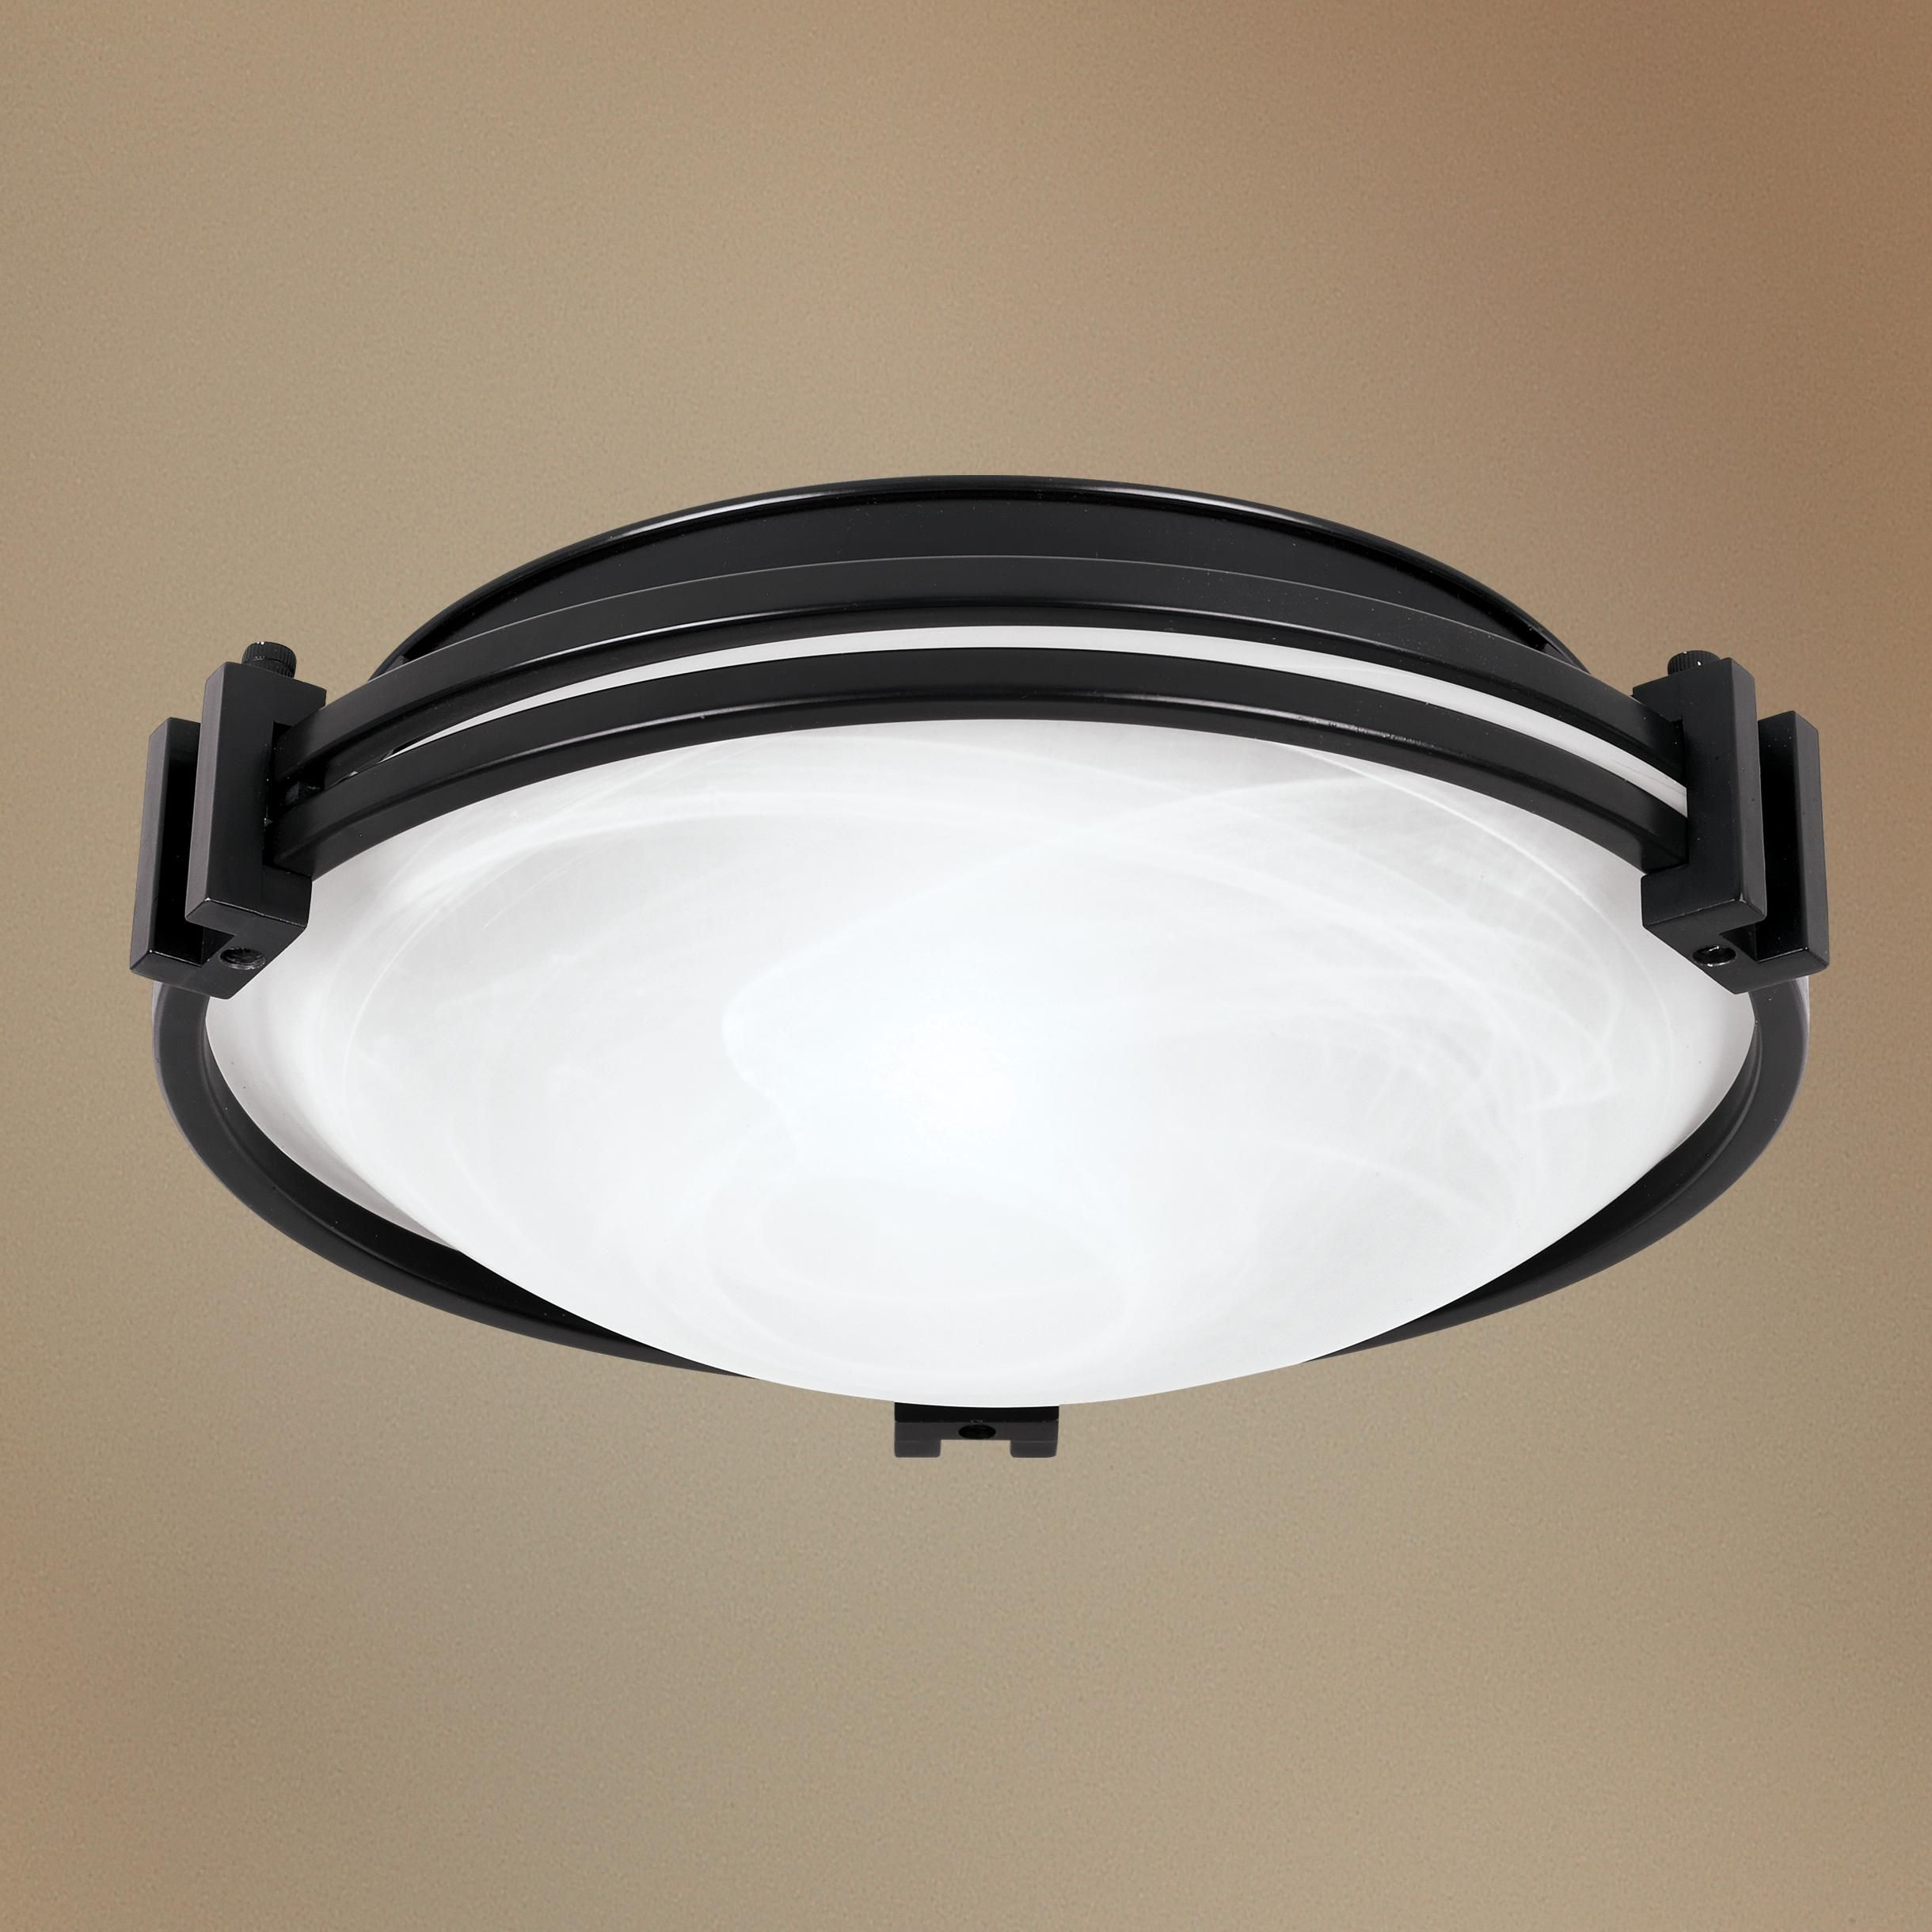 lamp ceiling panel ceilings ww off sq led on light switchit square warm pl original p sw cover